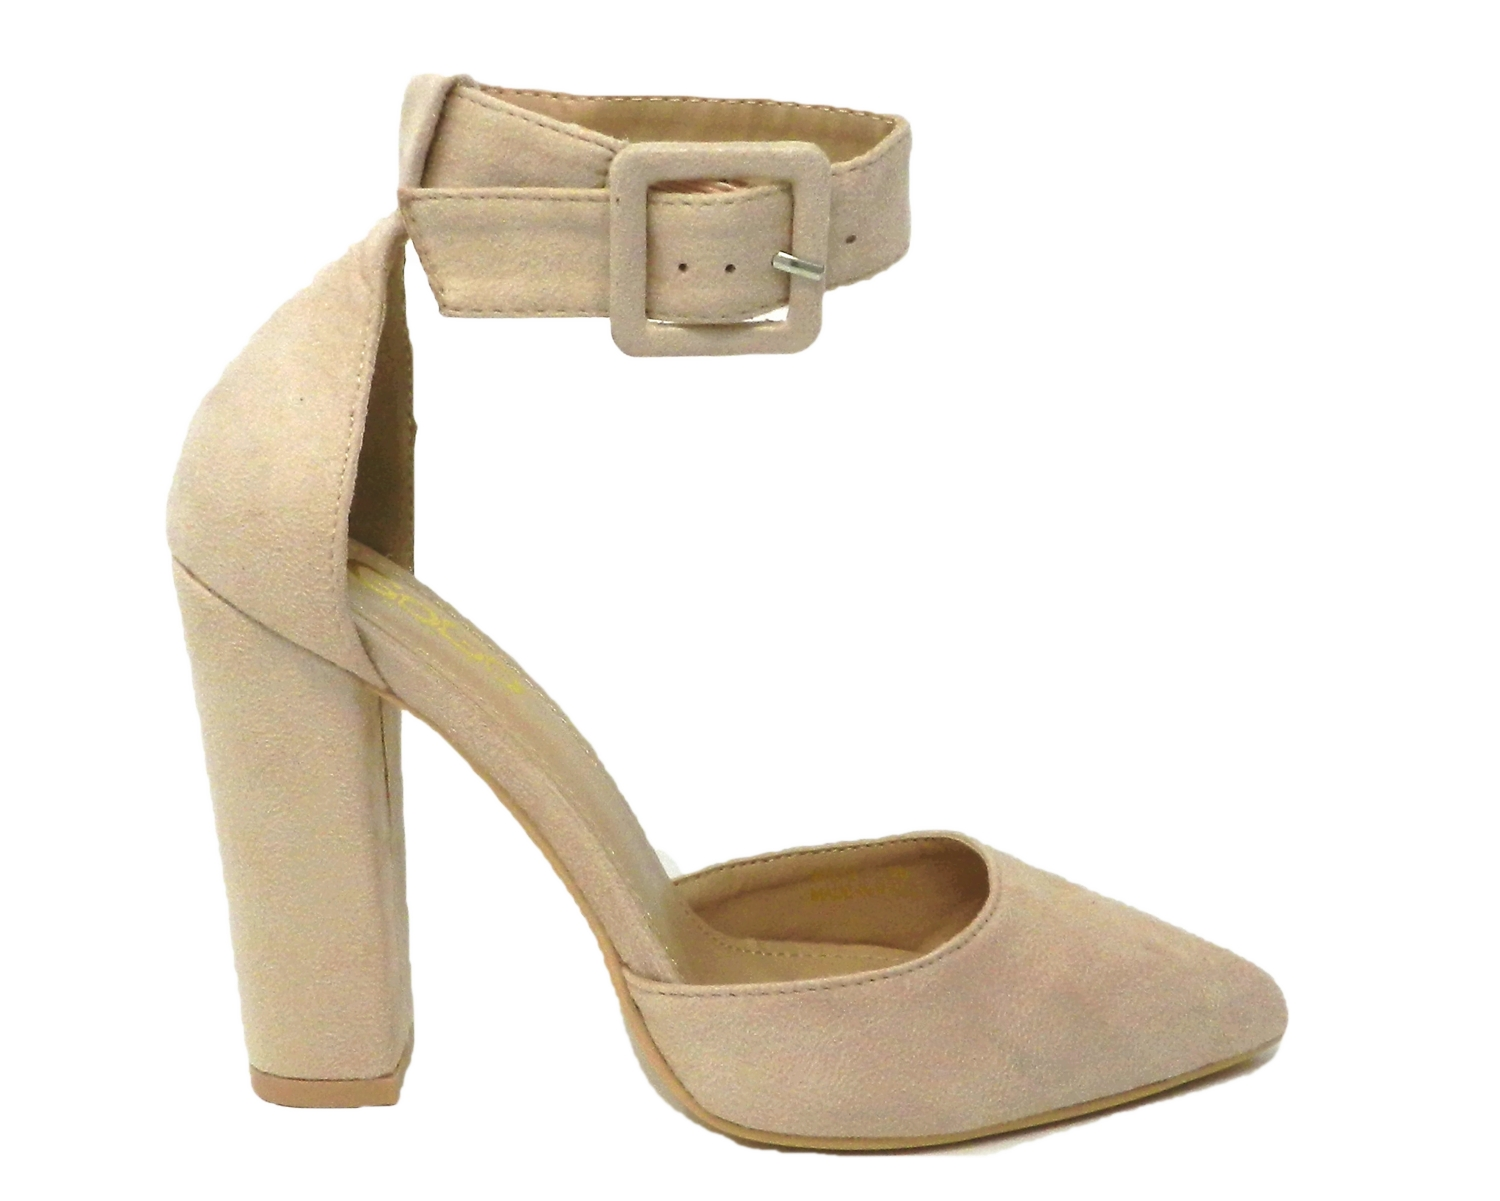 Refined décolleté from the tip of the elongated leather-suede - beige